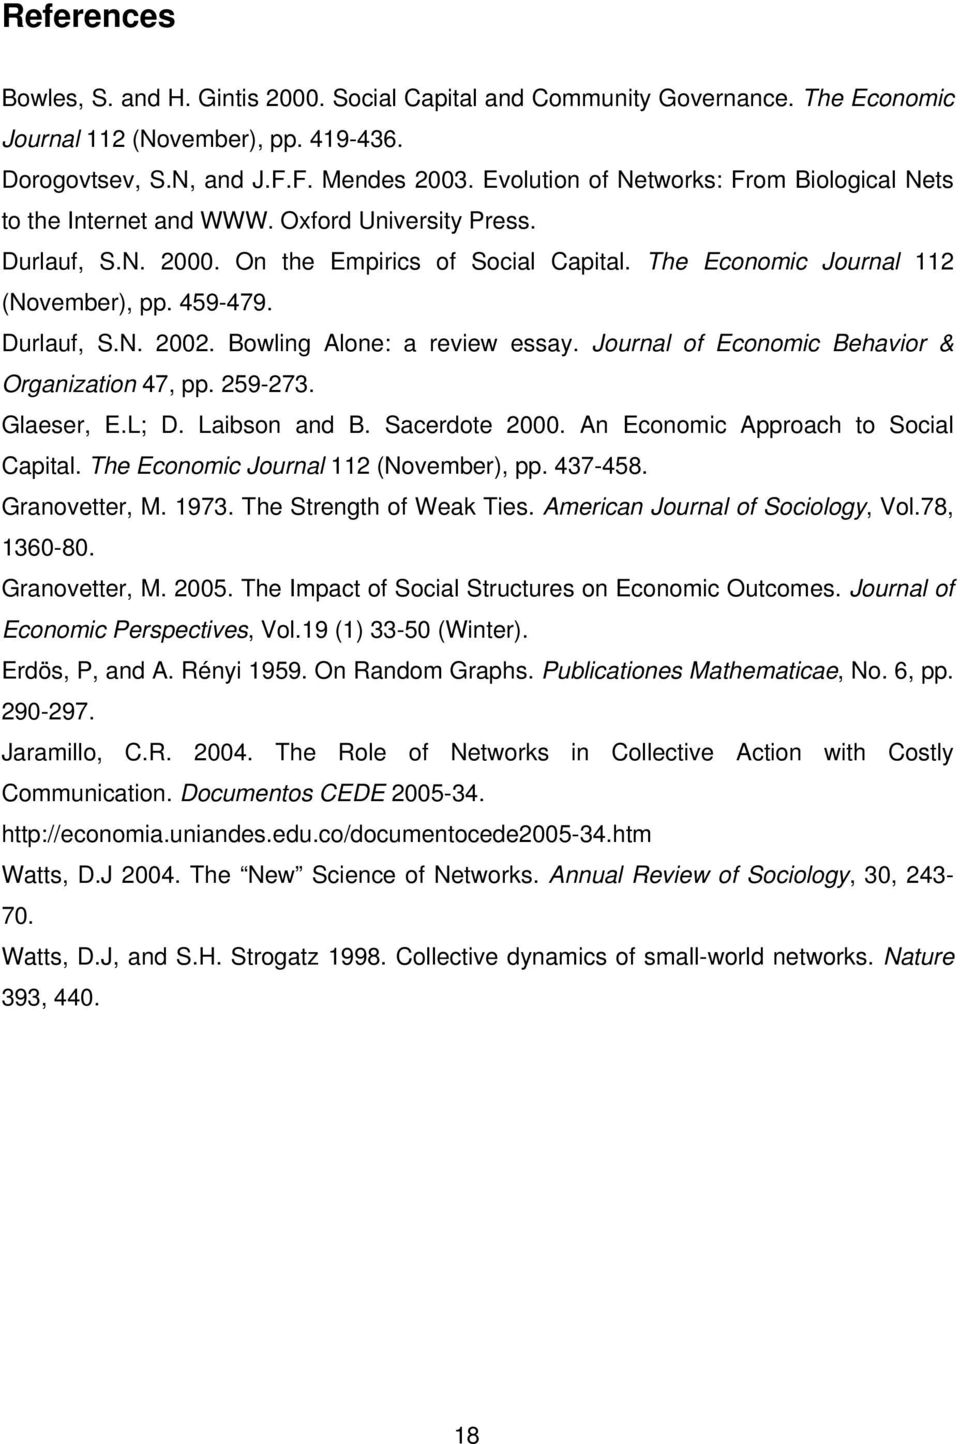 Durlauf, S.N. 2002. Bowling Alone: a review essay. Journal of Economic Behavior & Organization 47, pp. 259-273. Glaeser, E.L; D. Laibson and B. Sacerdote 2000. An Economic Approach to Social Capital.